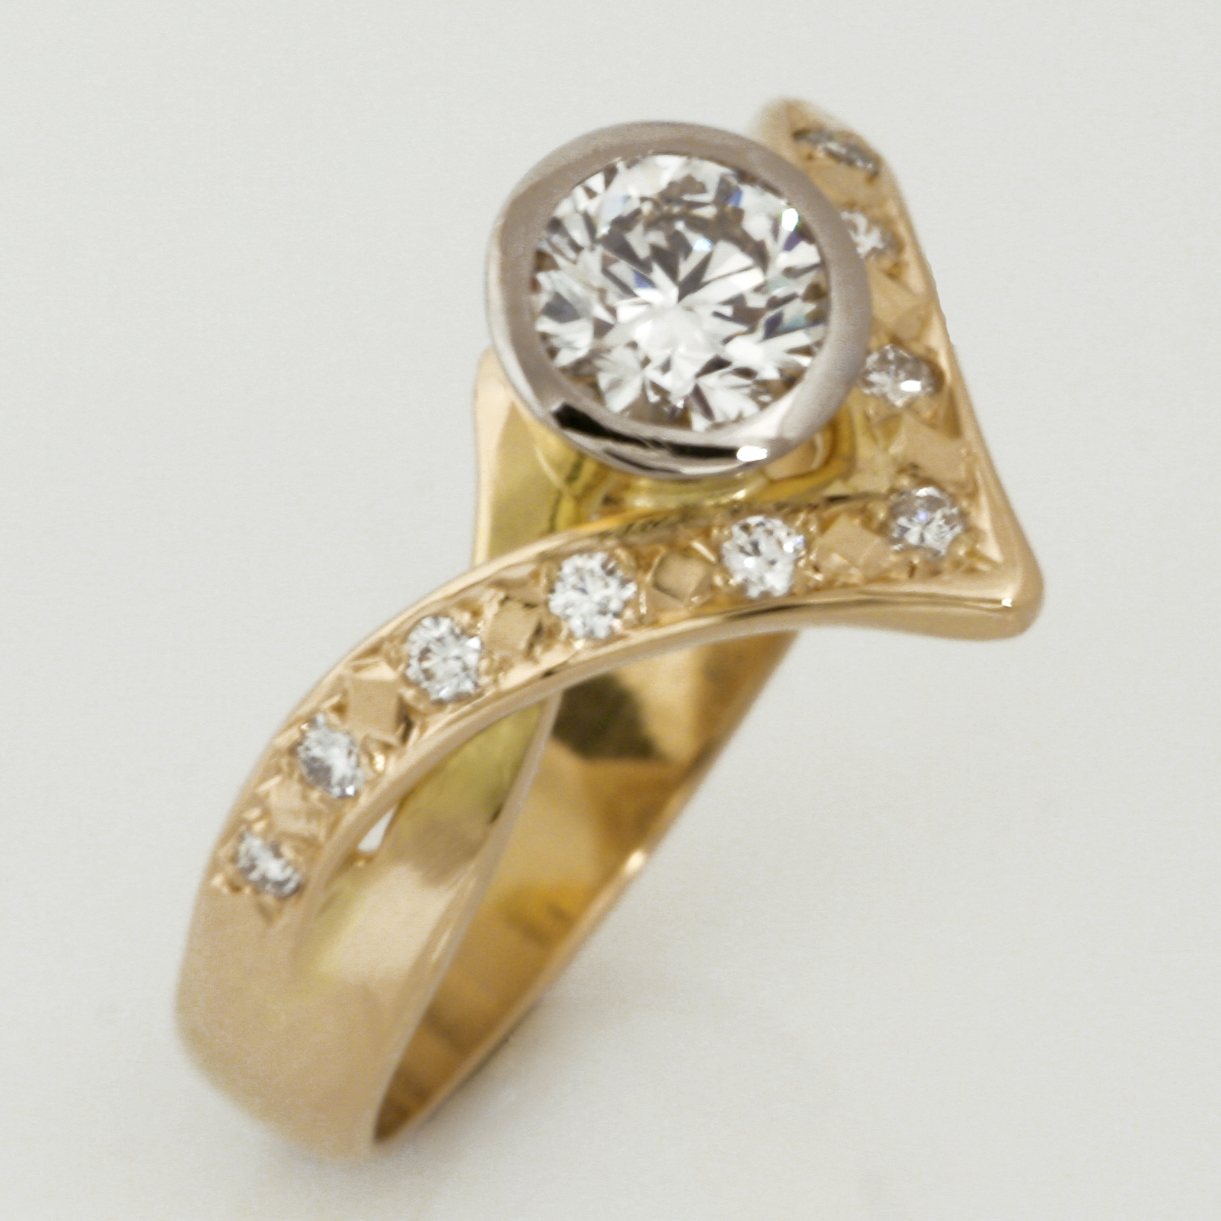 Handmade ladies 18ct yellow gold diamond ring